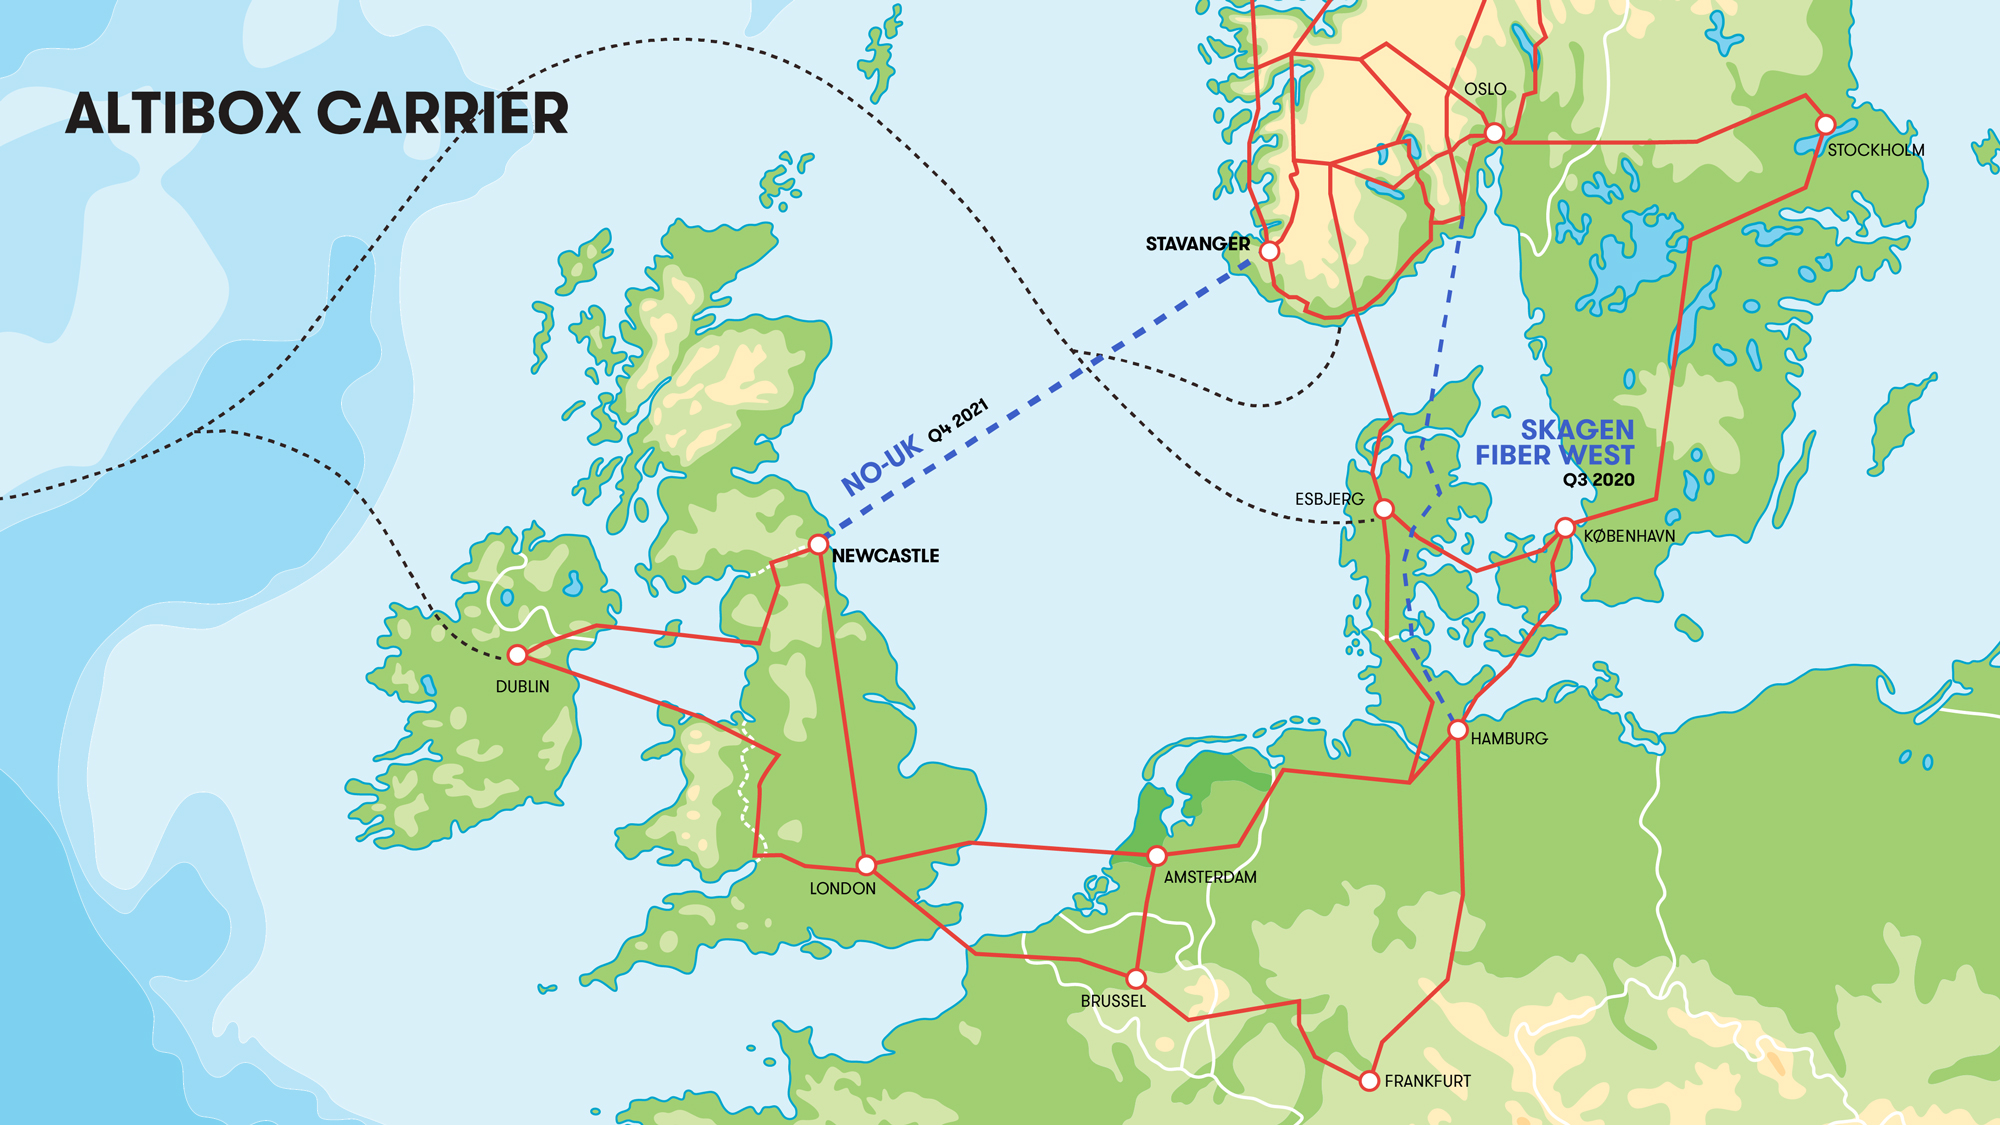 Altibox Carrier's fiber network across Europe